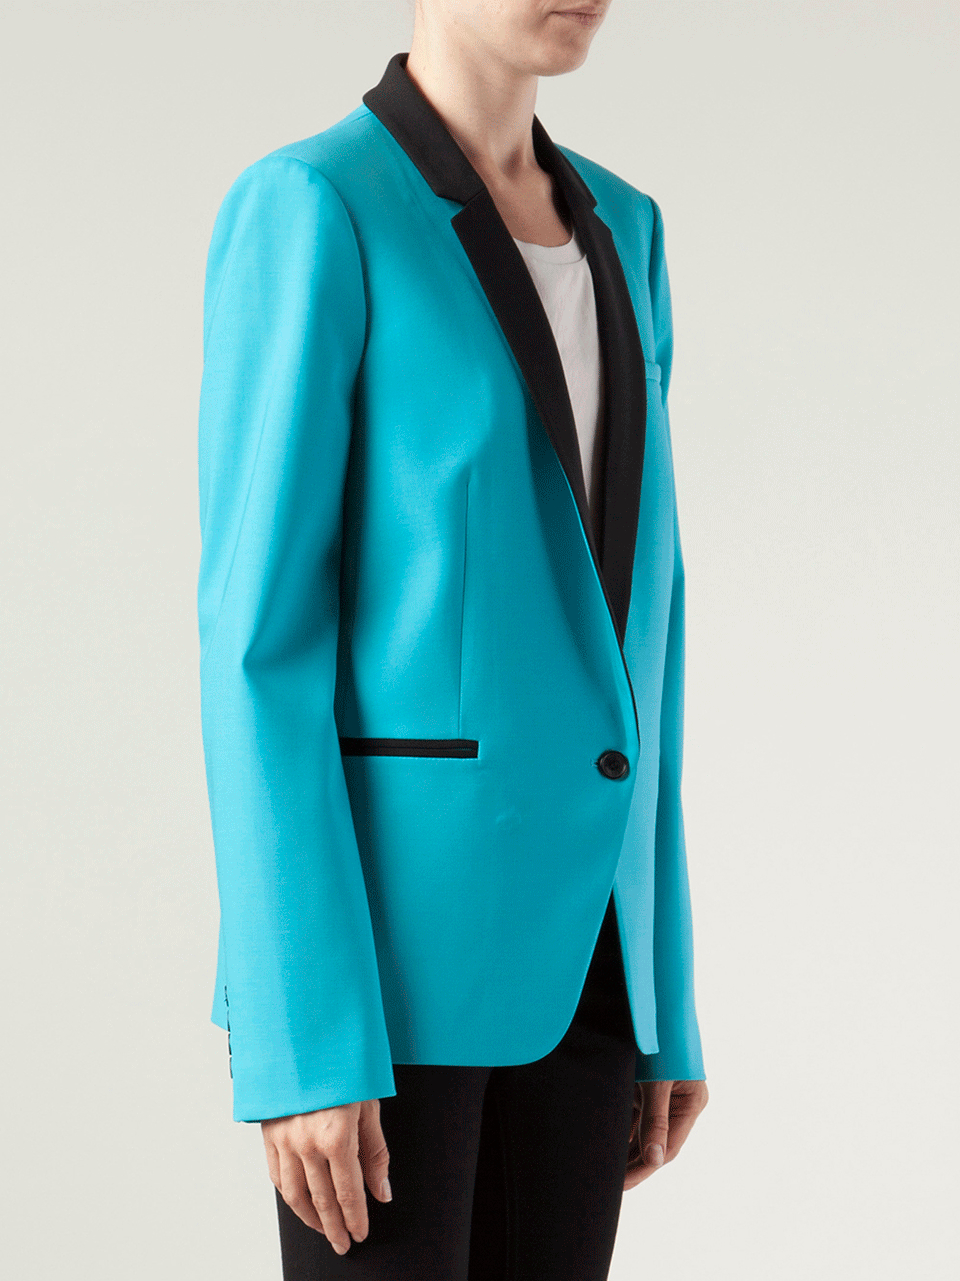 Lyst Michael Kors One Button Tuxedo Jacket In Blue